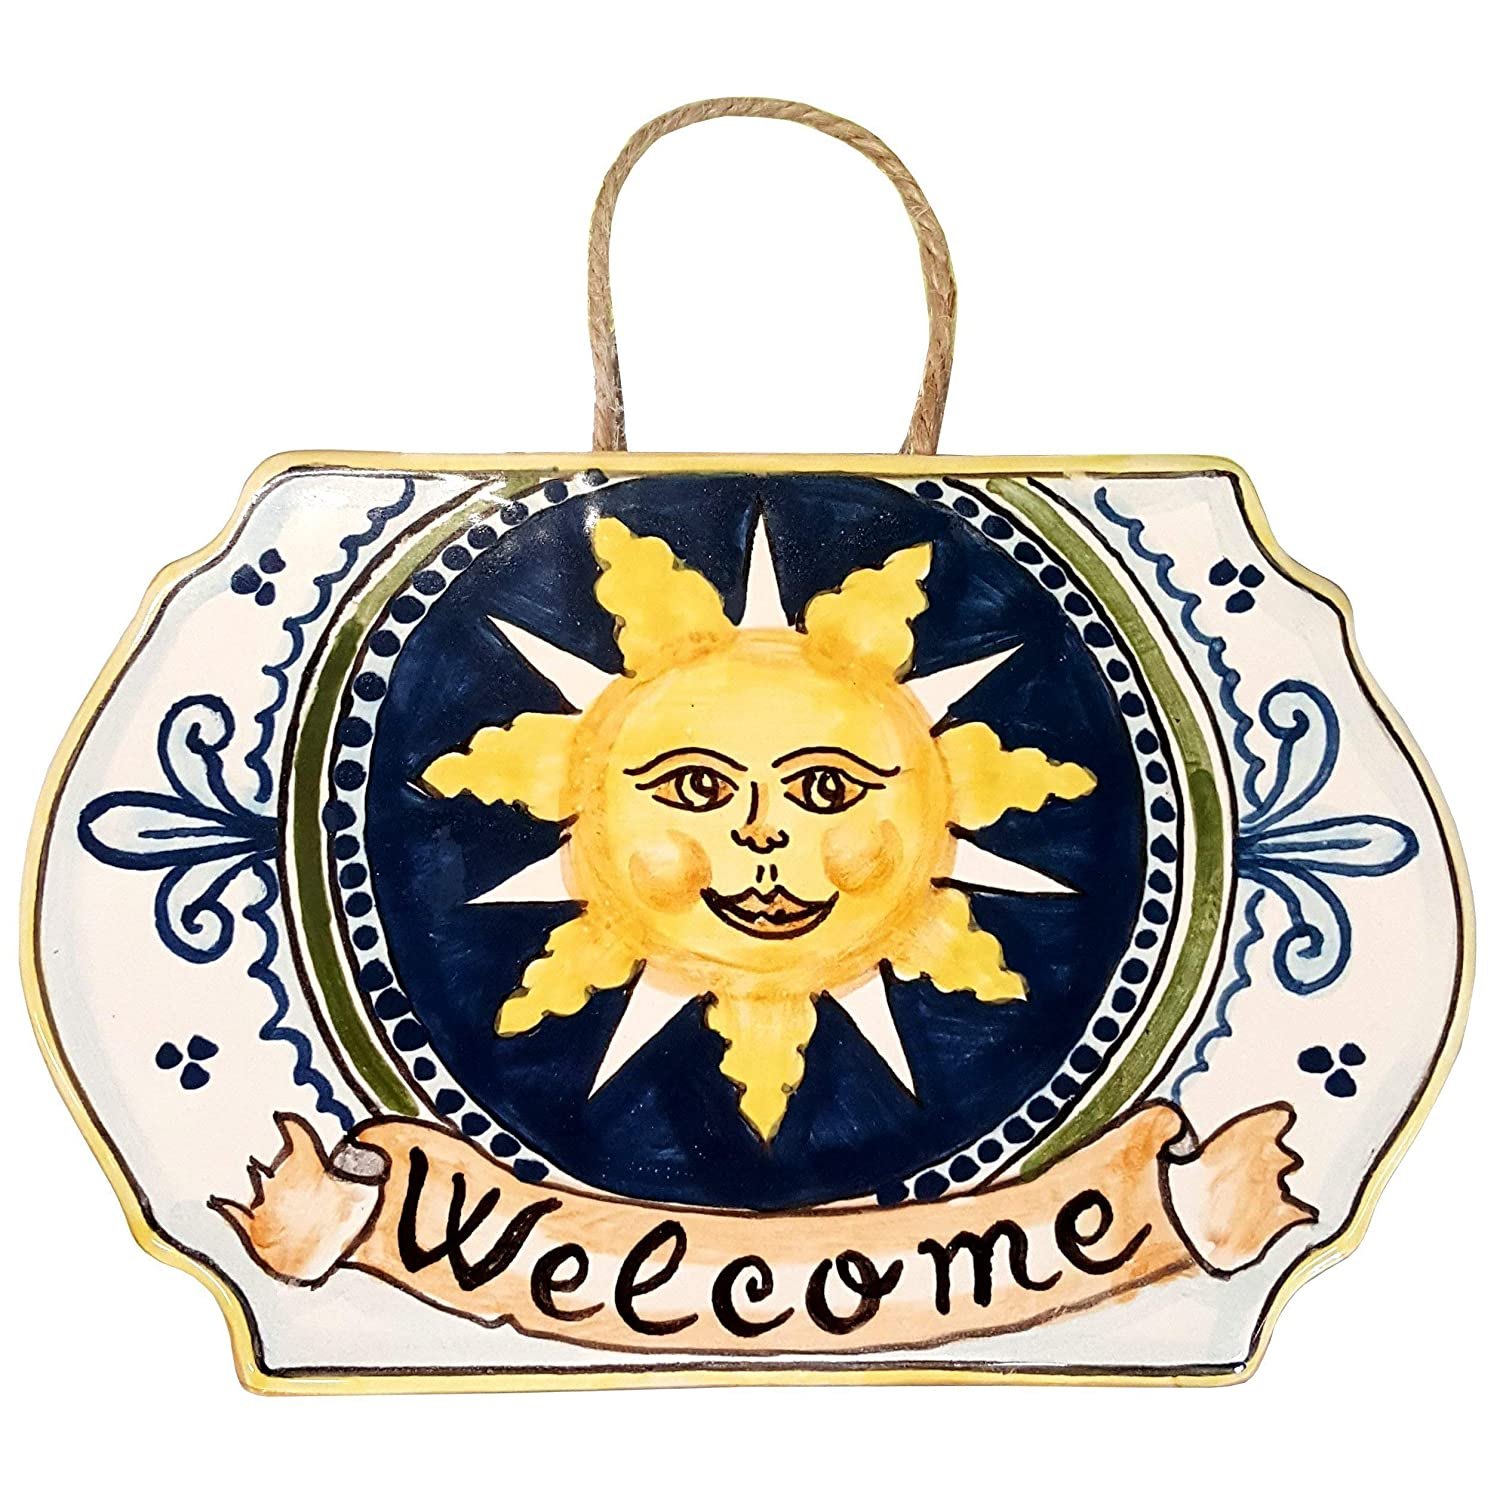 Italian Ceramic Art Pottery Tile House Plaques Decorative Sun Welcome Hand Painted Made in ITALY Tuscan CERAMICHE DARTE PARRINI